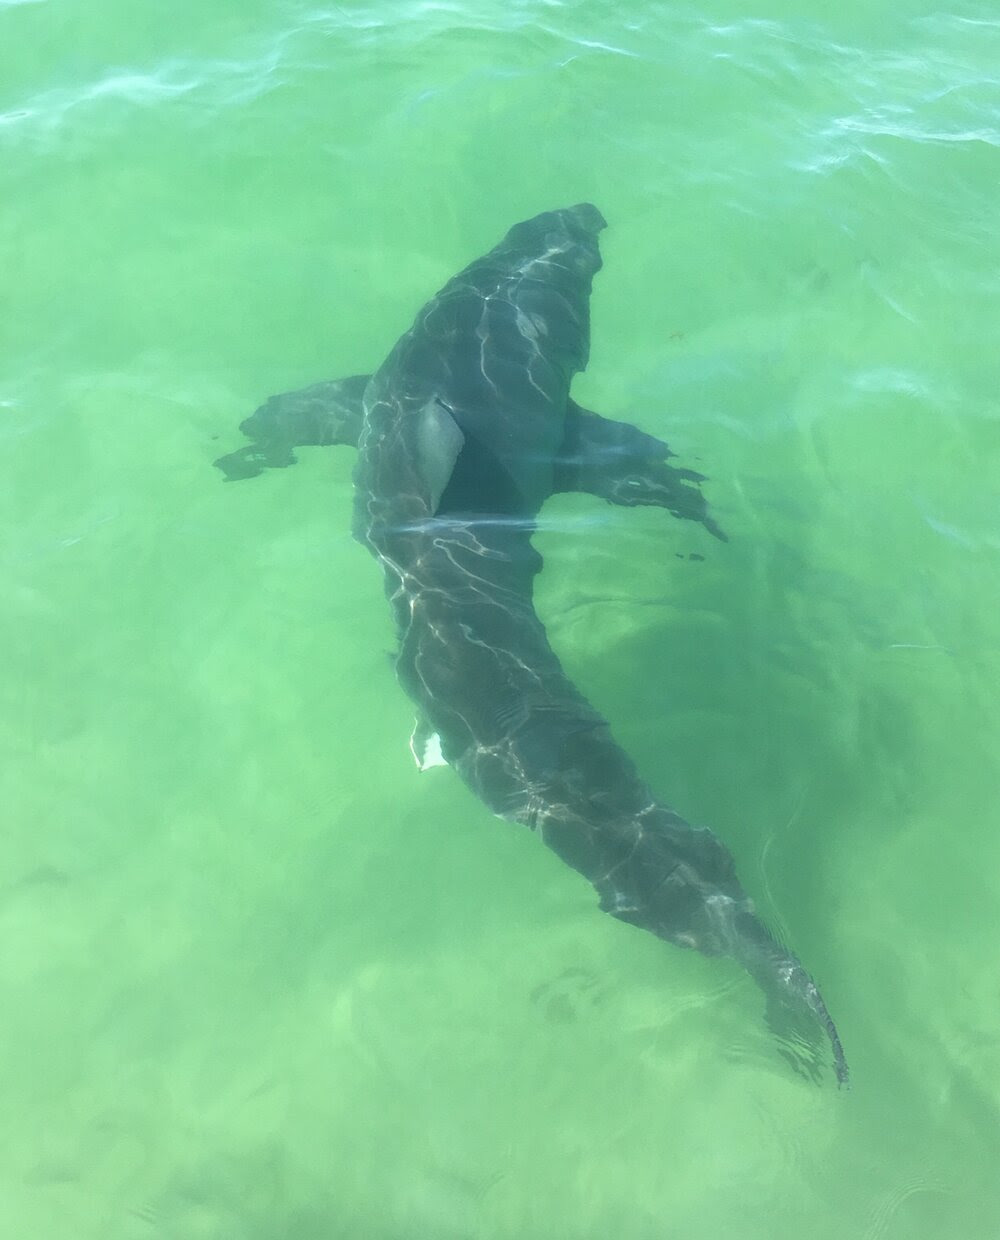 New Data on Cape Cod Great White Sharks